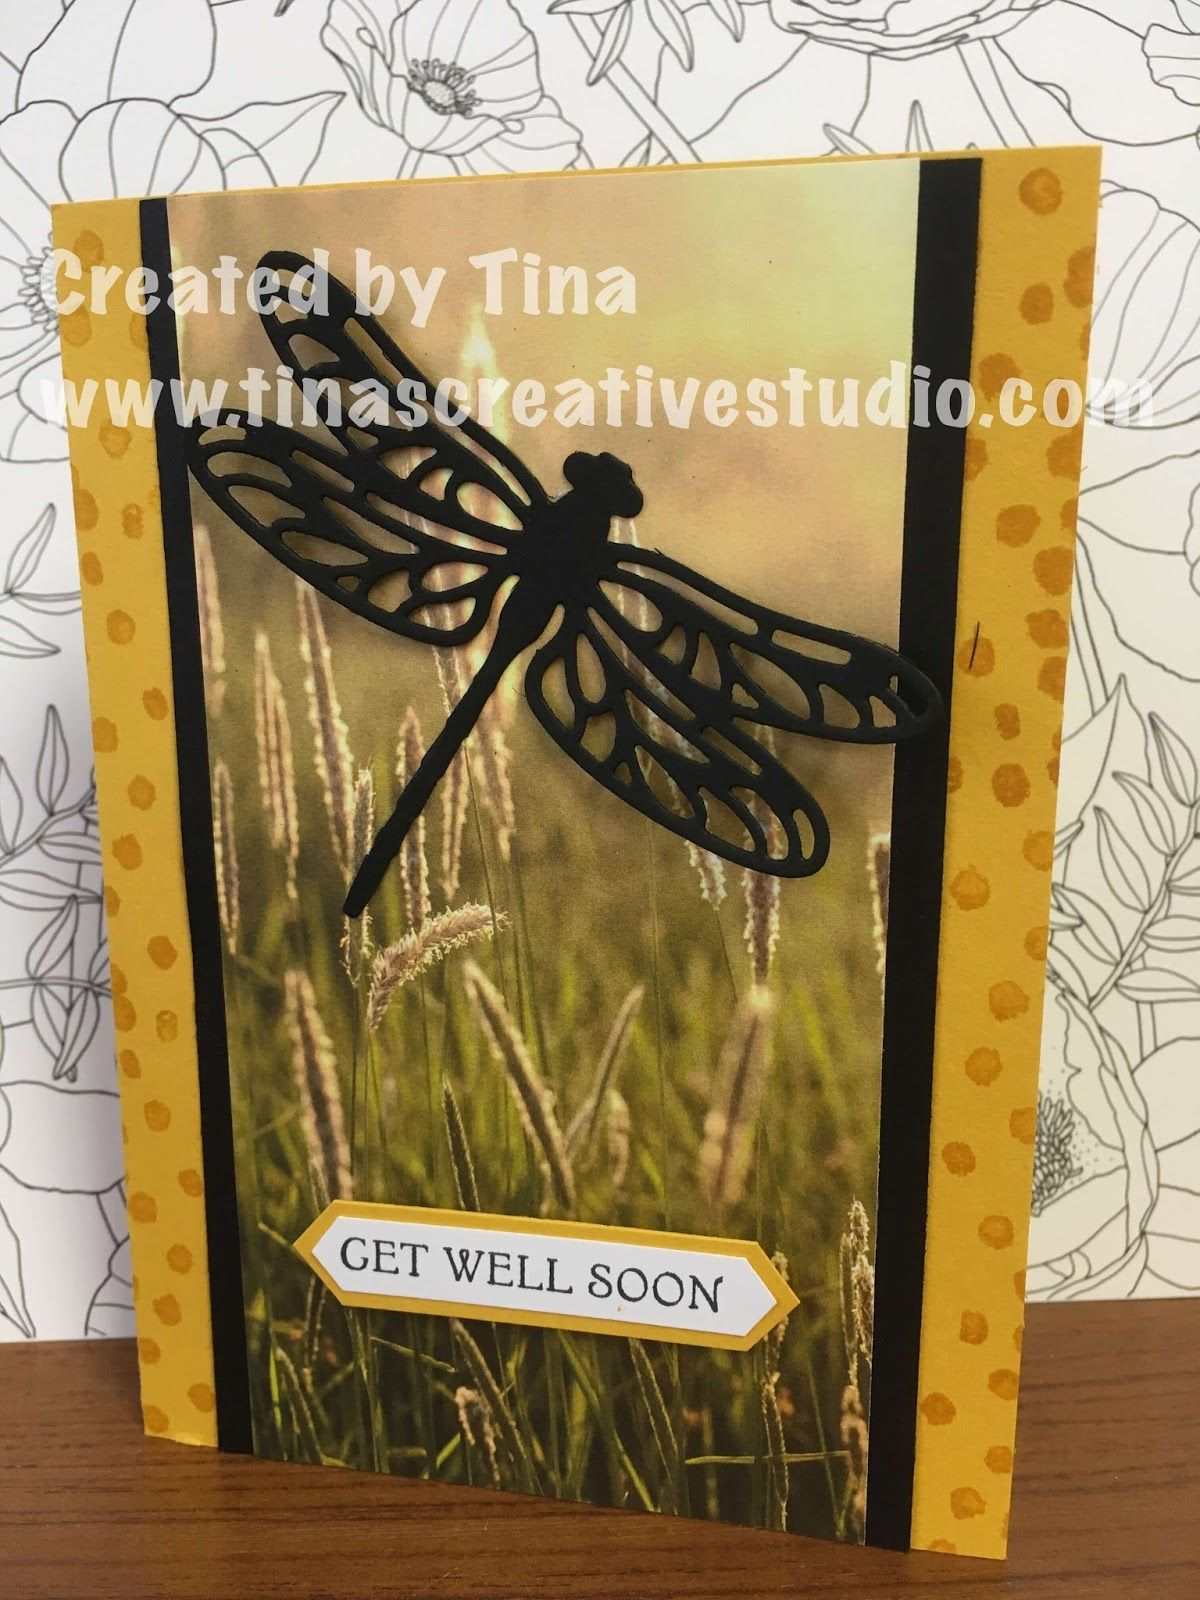 Stamping and Scrapbooking ideas, techniques, tutorials and classes.